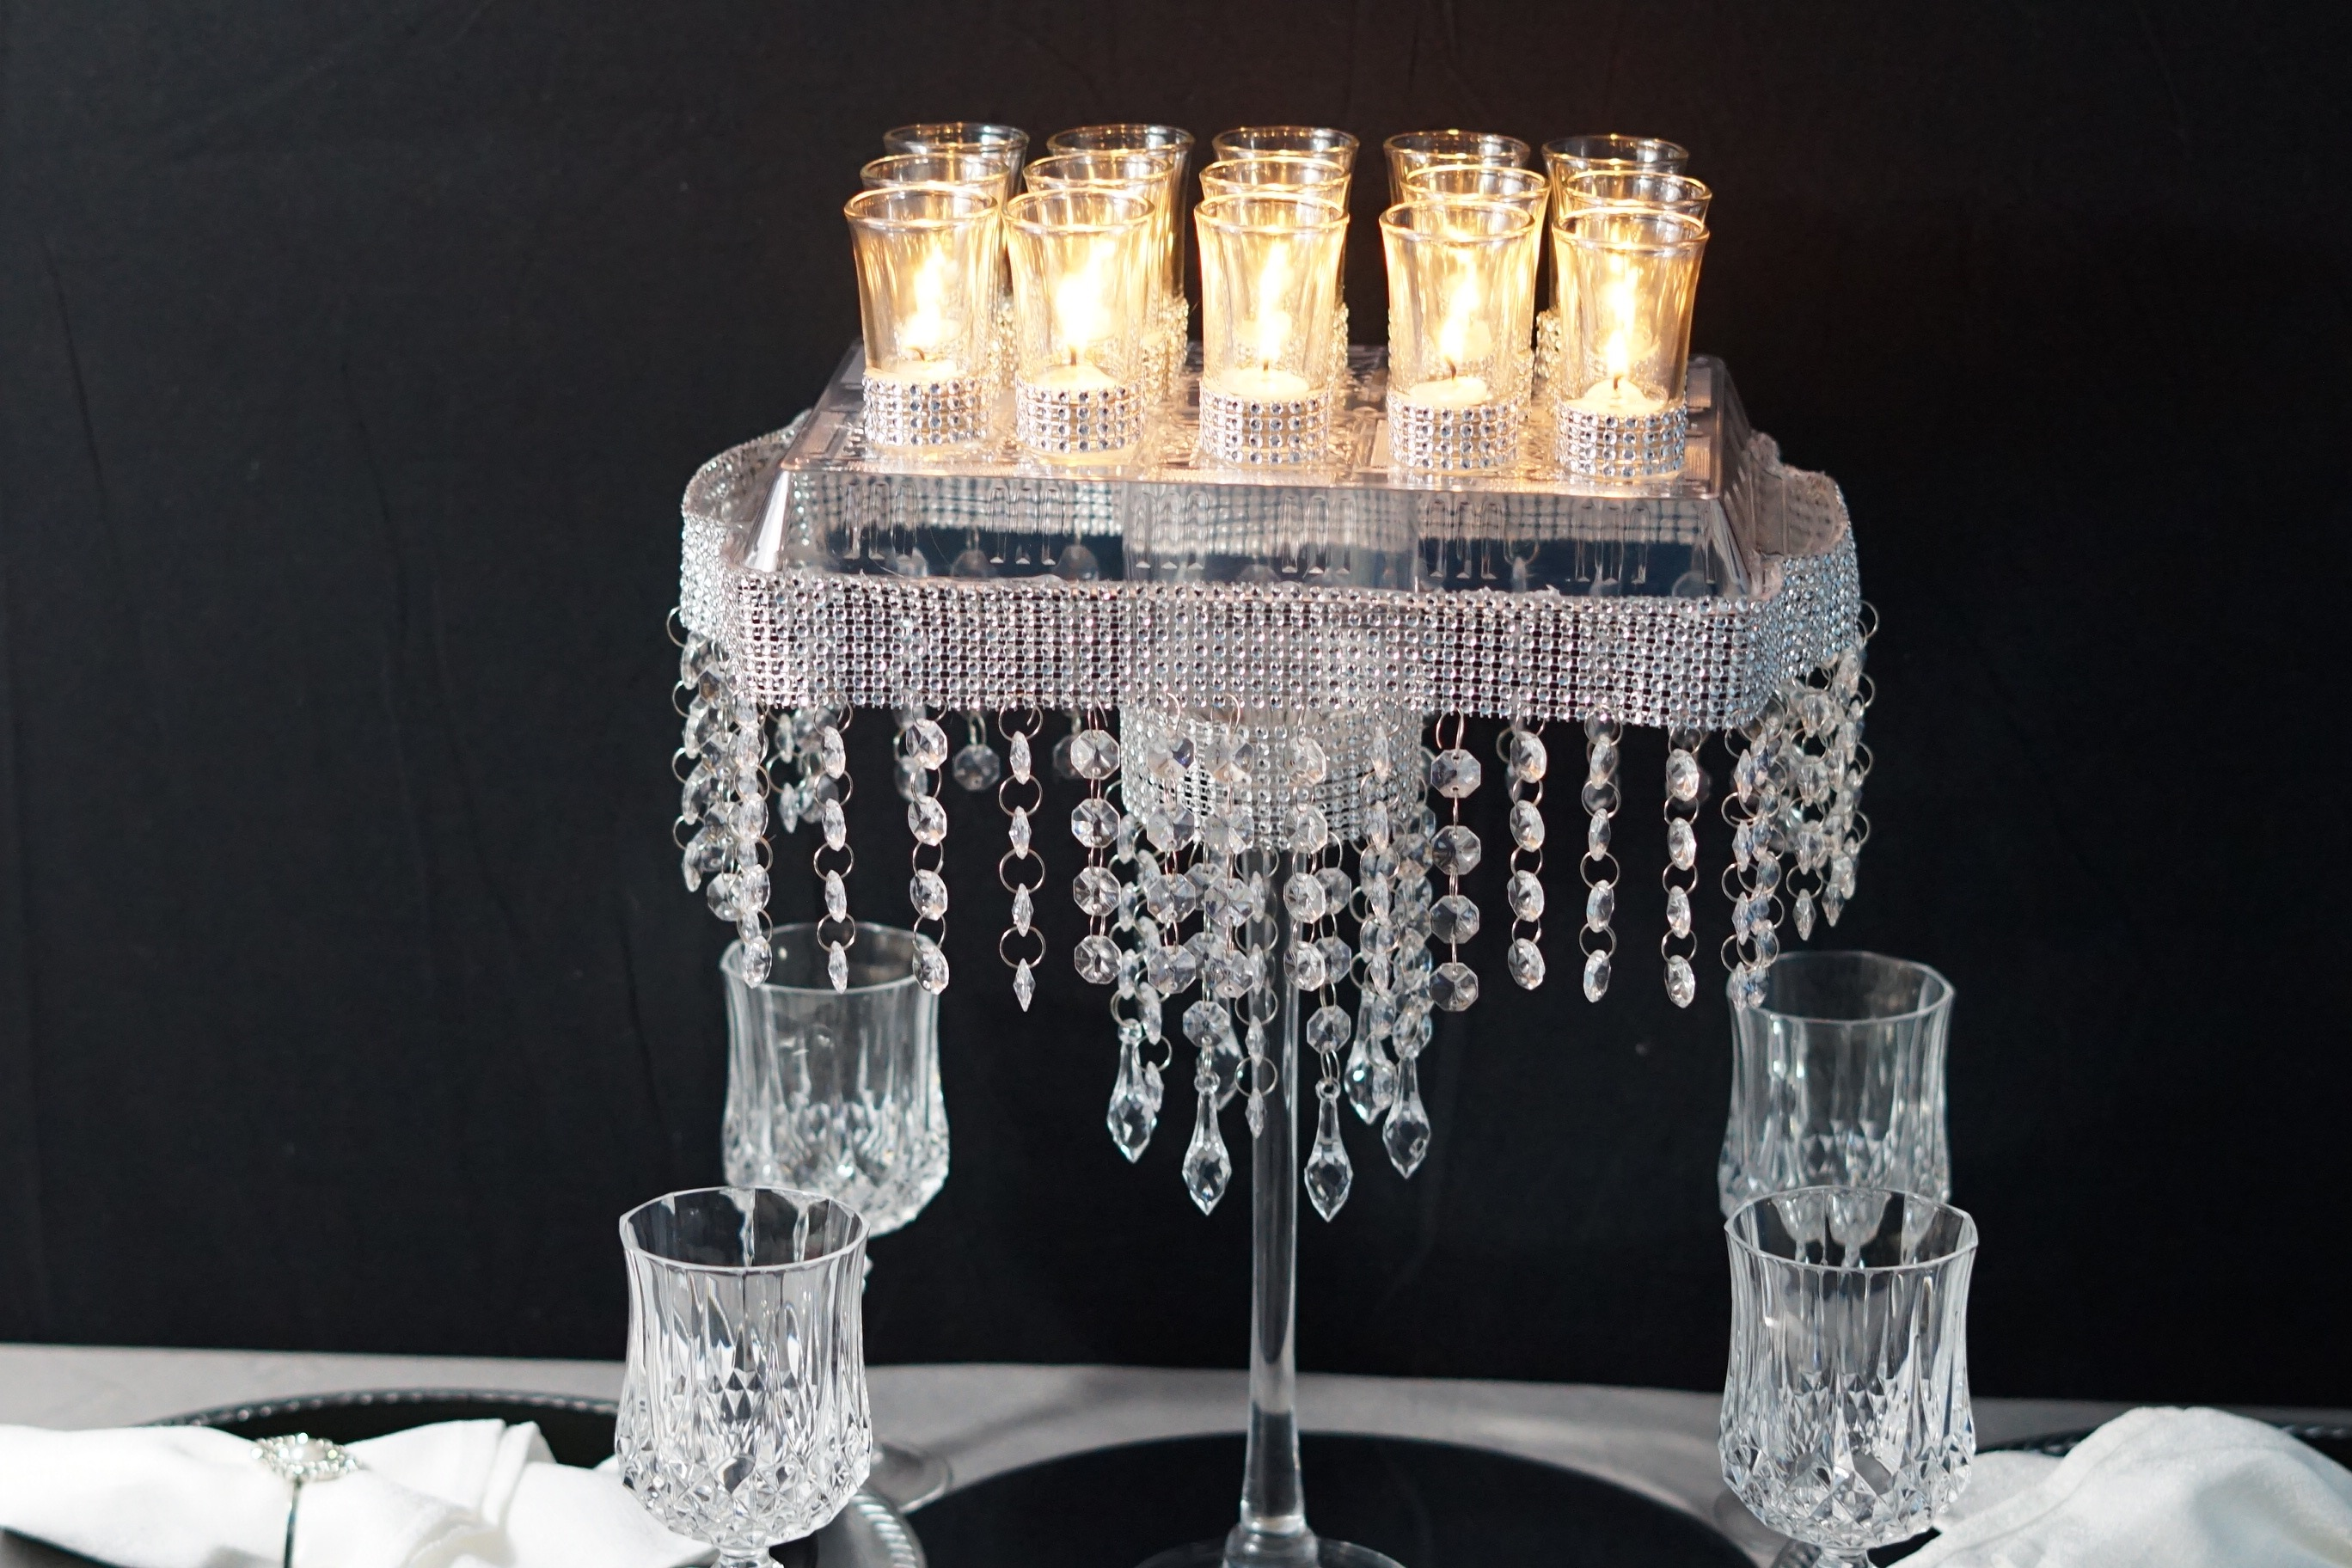 Diy candle glam wedding centerpiece lets glam it up this week with our diy candle glam wedding centerpiece adorned with gems rhinestone trim and candles this blinged out table decor is junglespirit Images